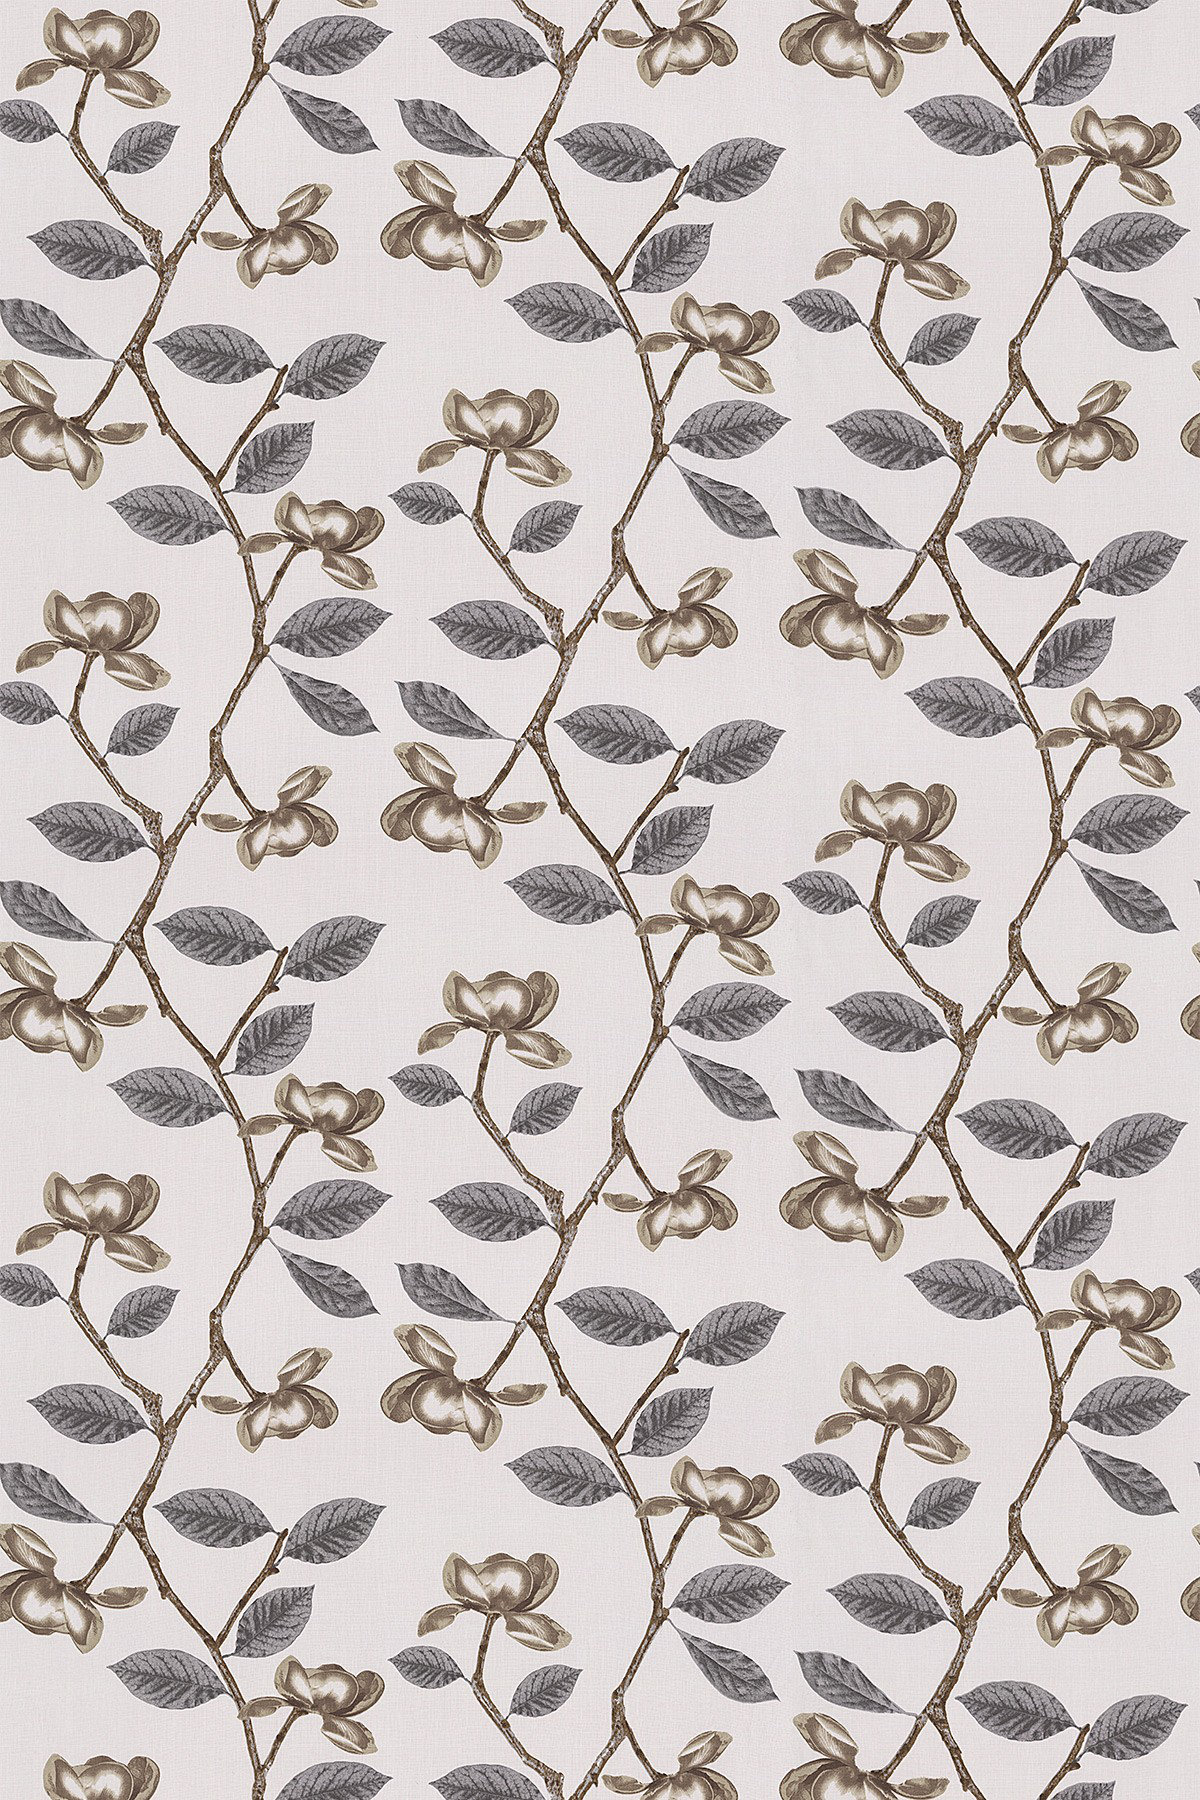 Image of Jocelyn Warner Fabric Flora, JWF-903